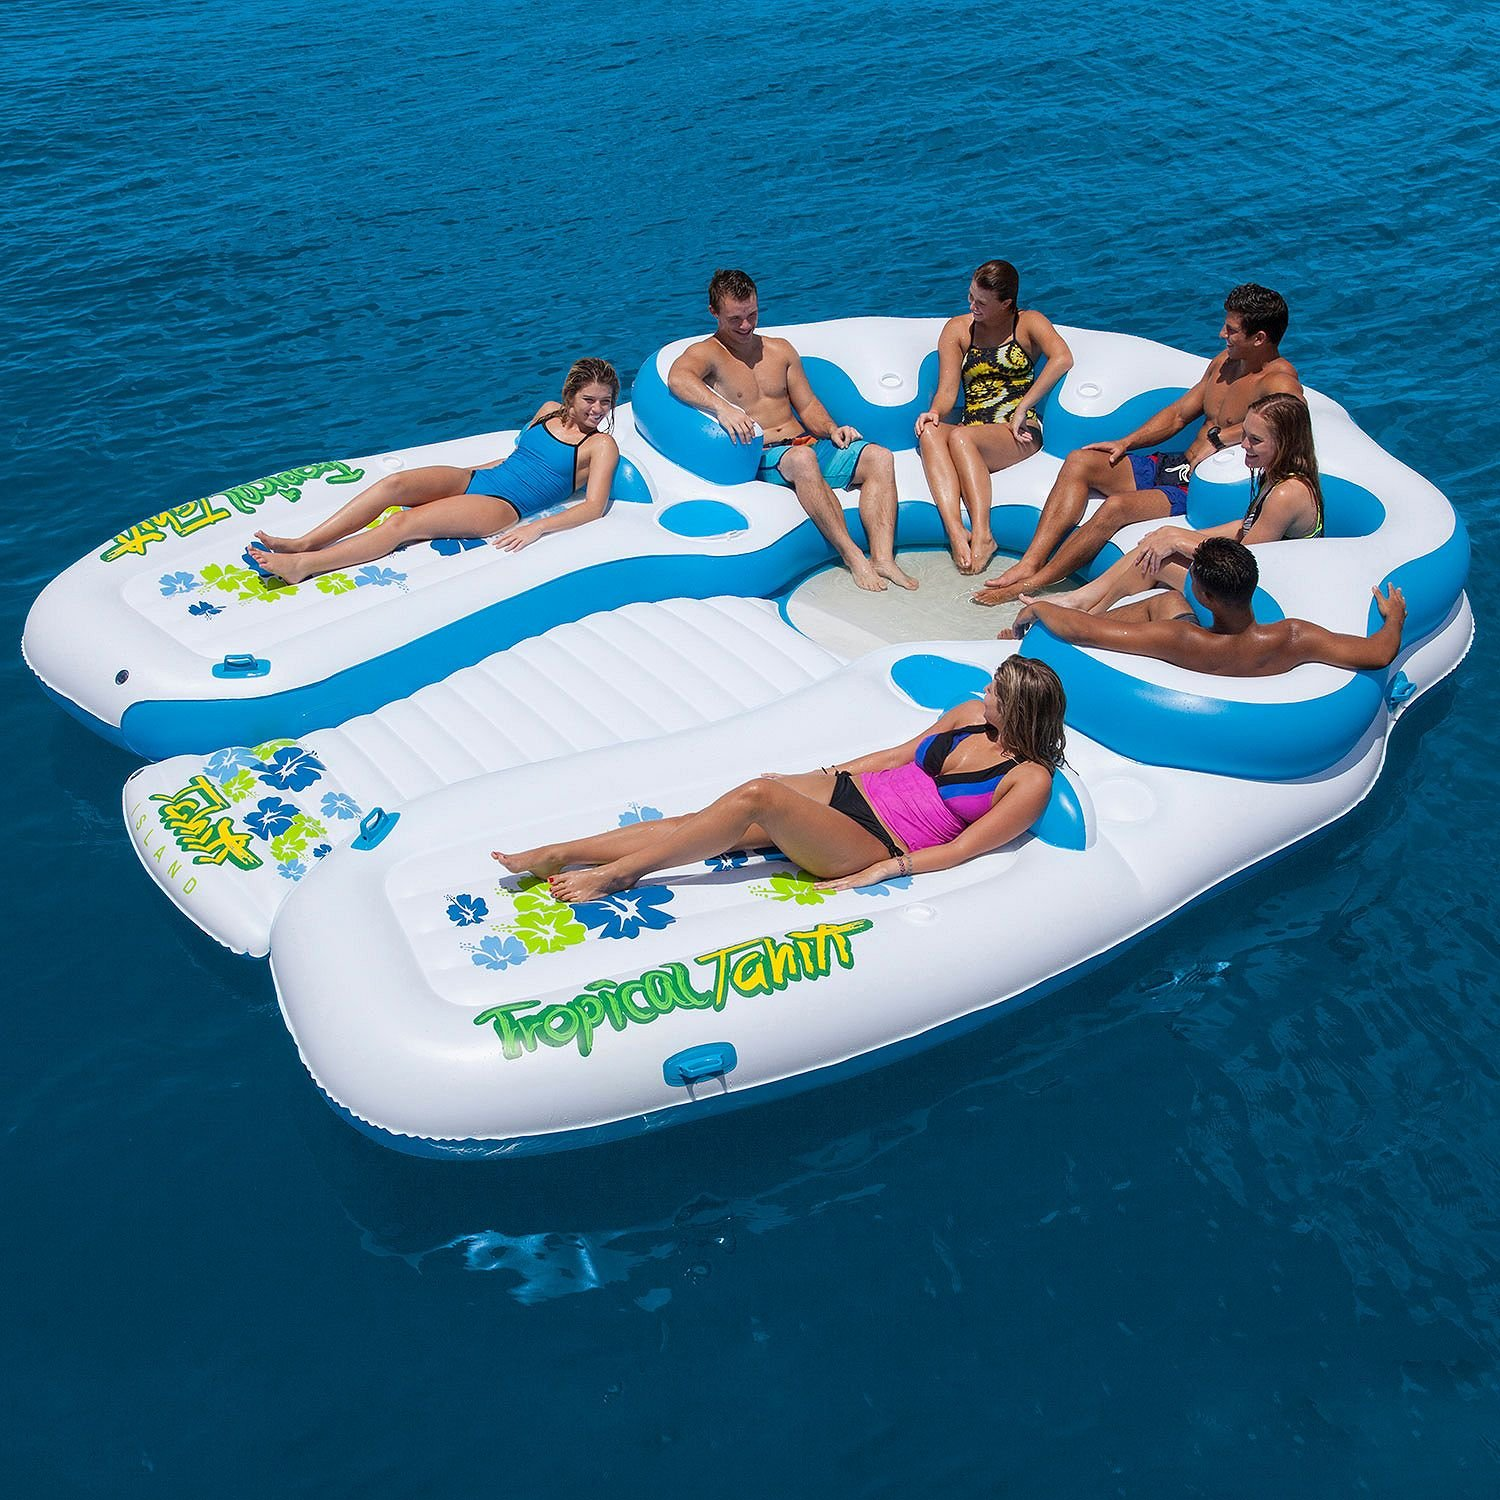 Tropical Tahiti 7-Person Floating Island with Two Suntanning Deck